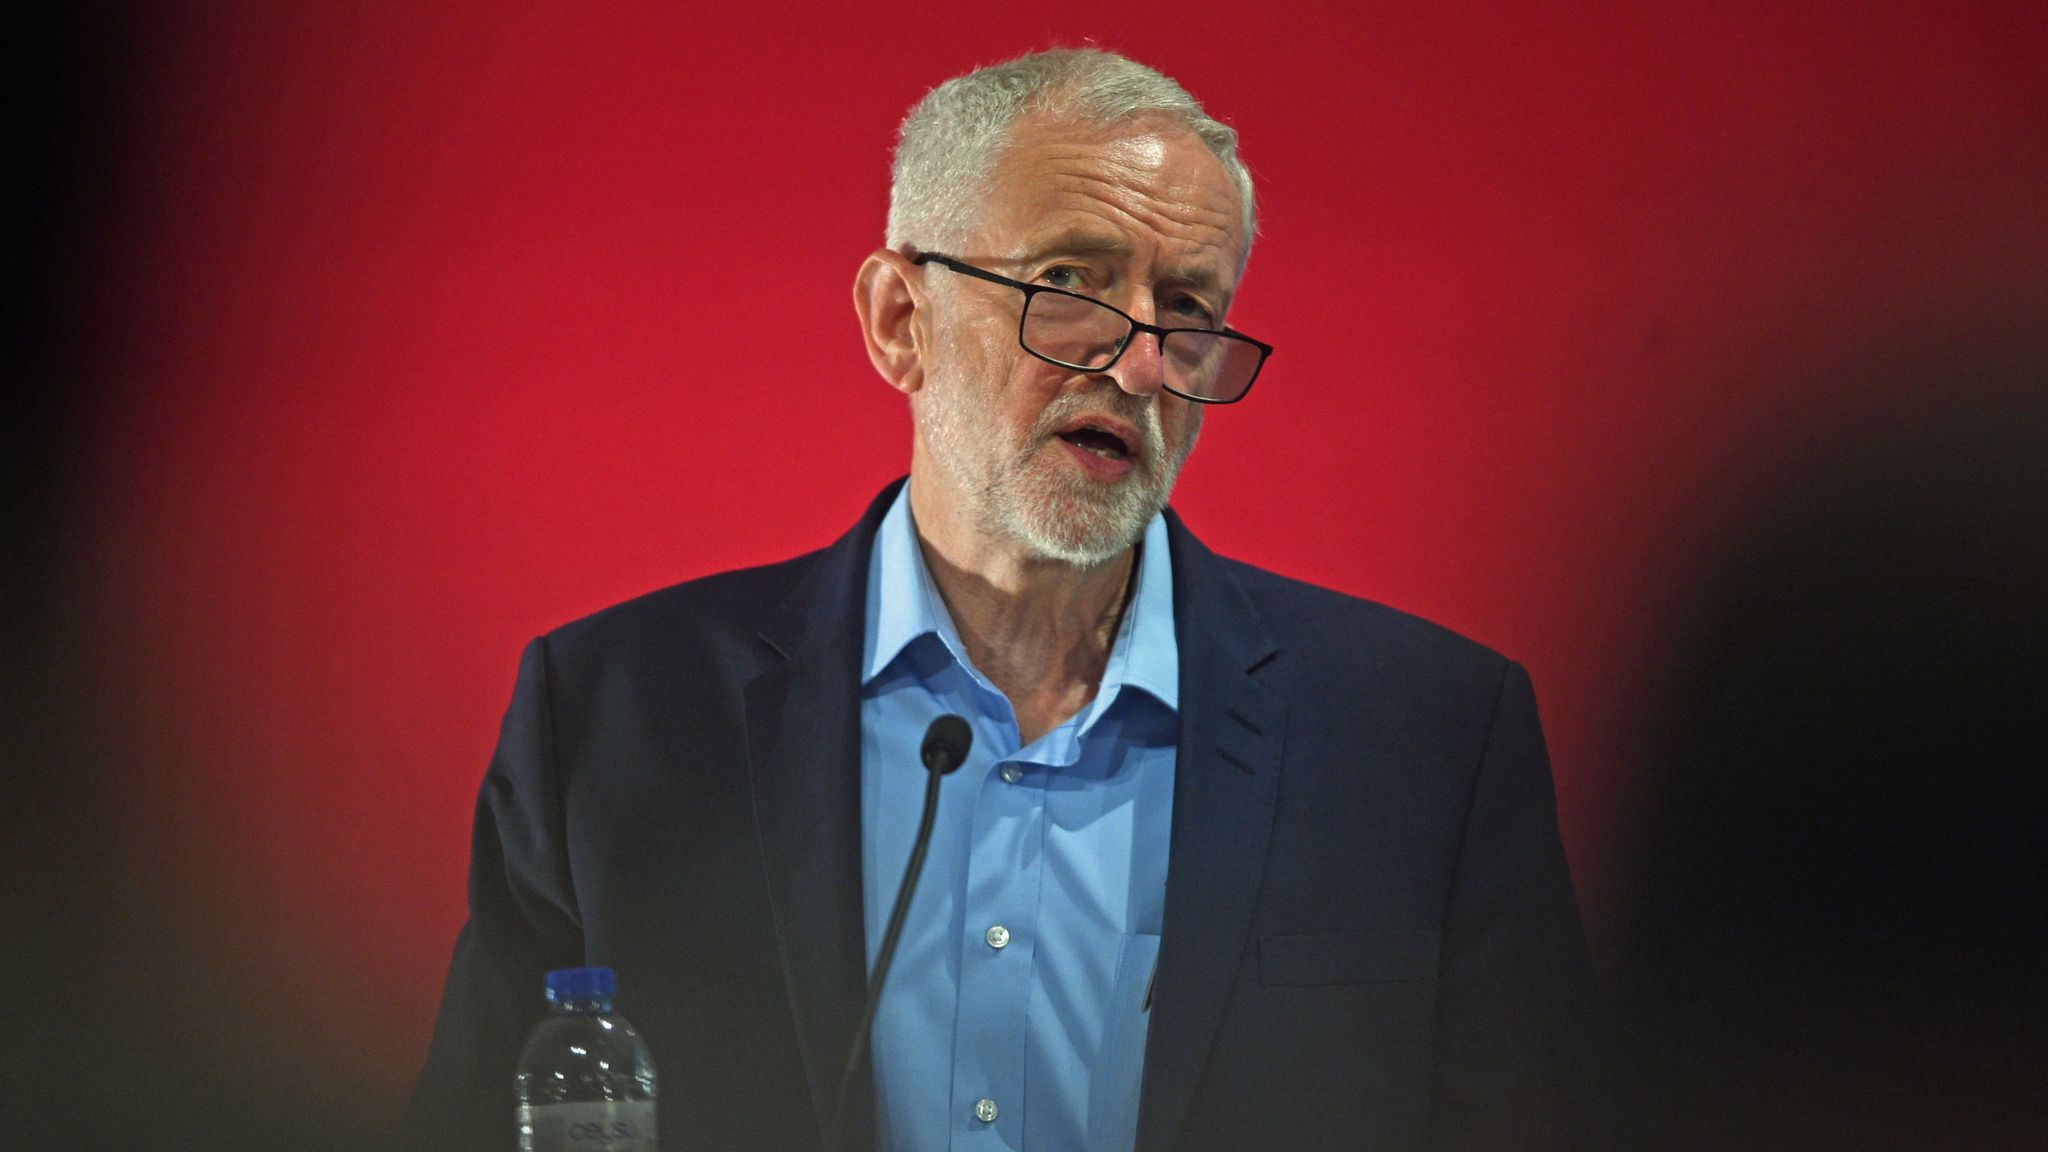 Labour a 'welcoming refuge' for antisemitism under Corbyn, says Jewish group's dossier